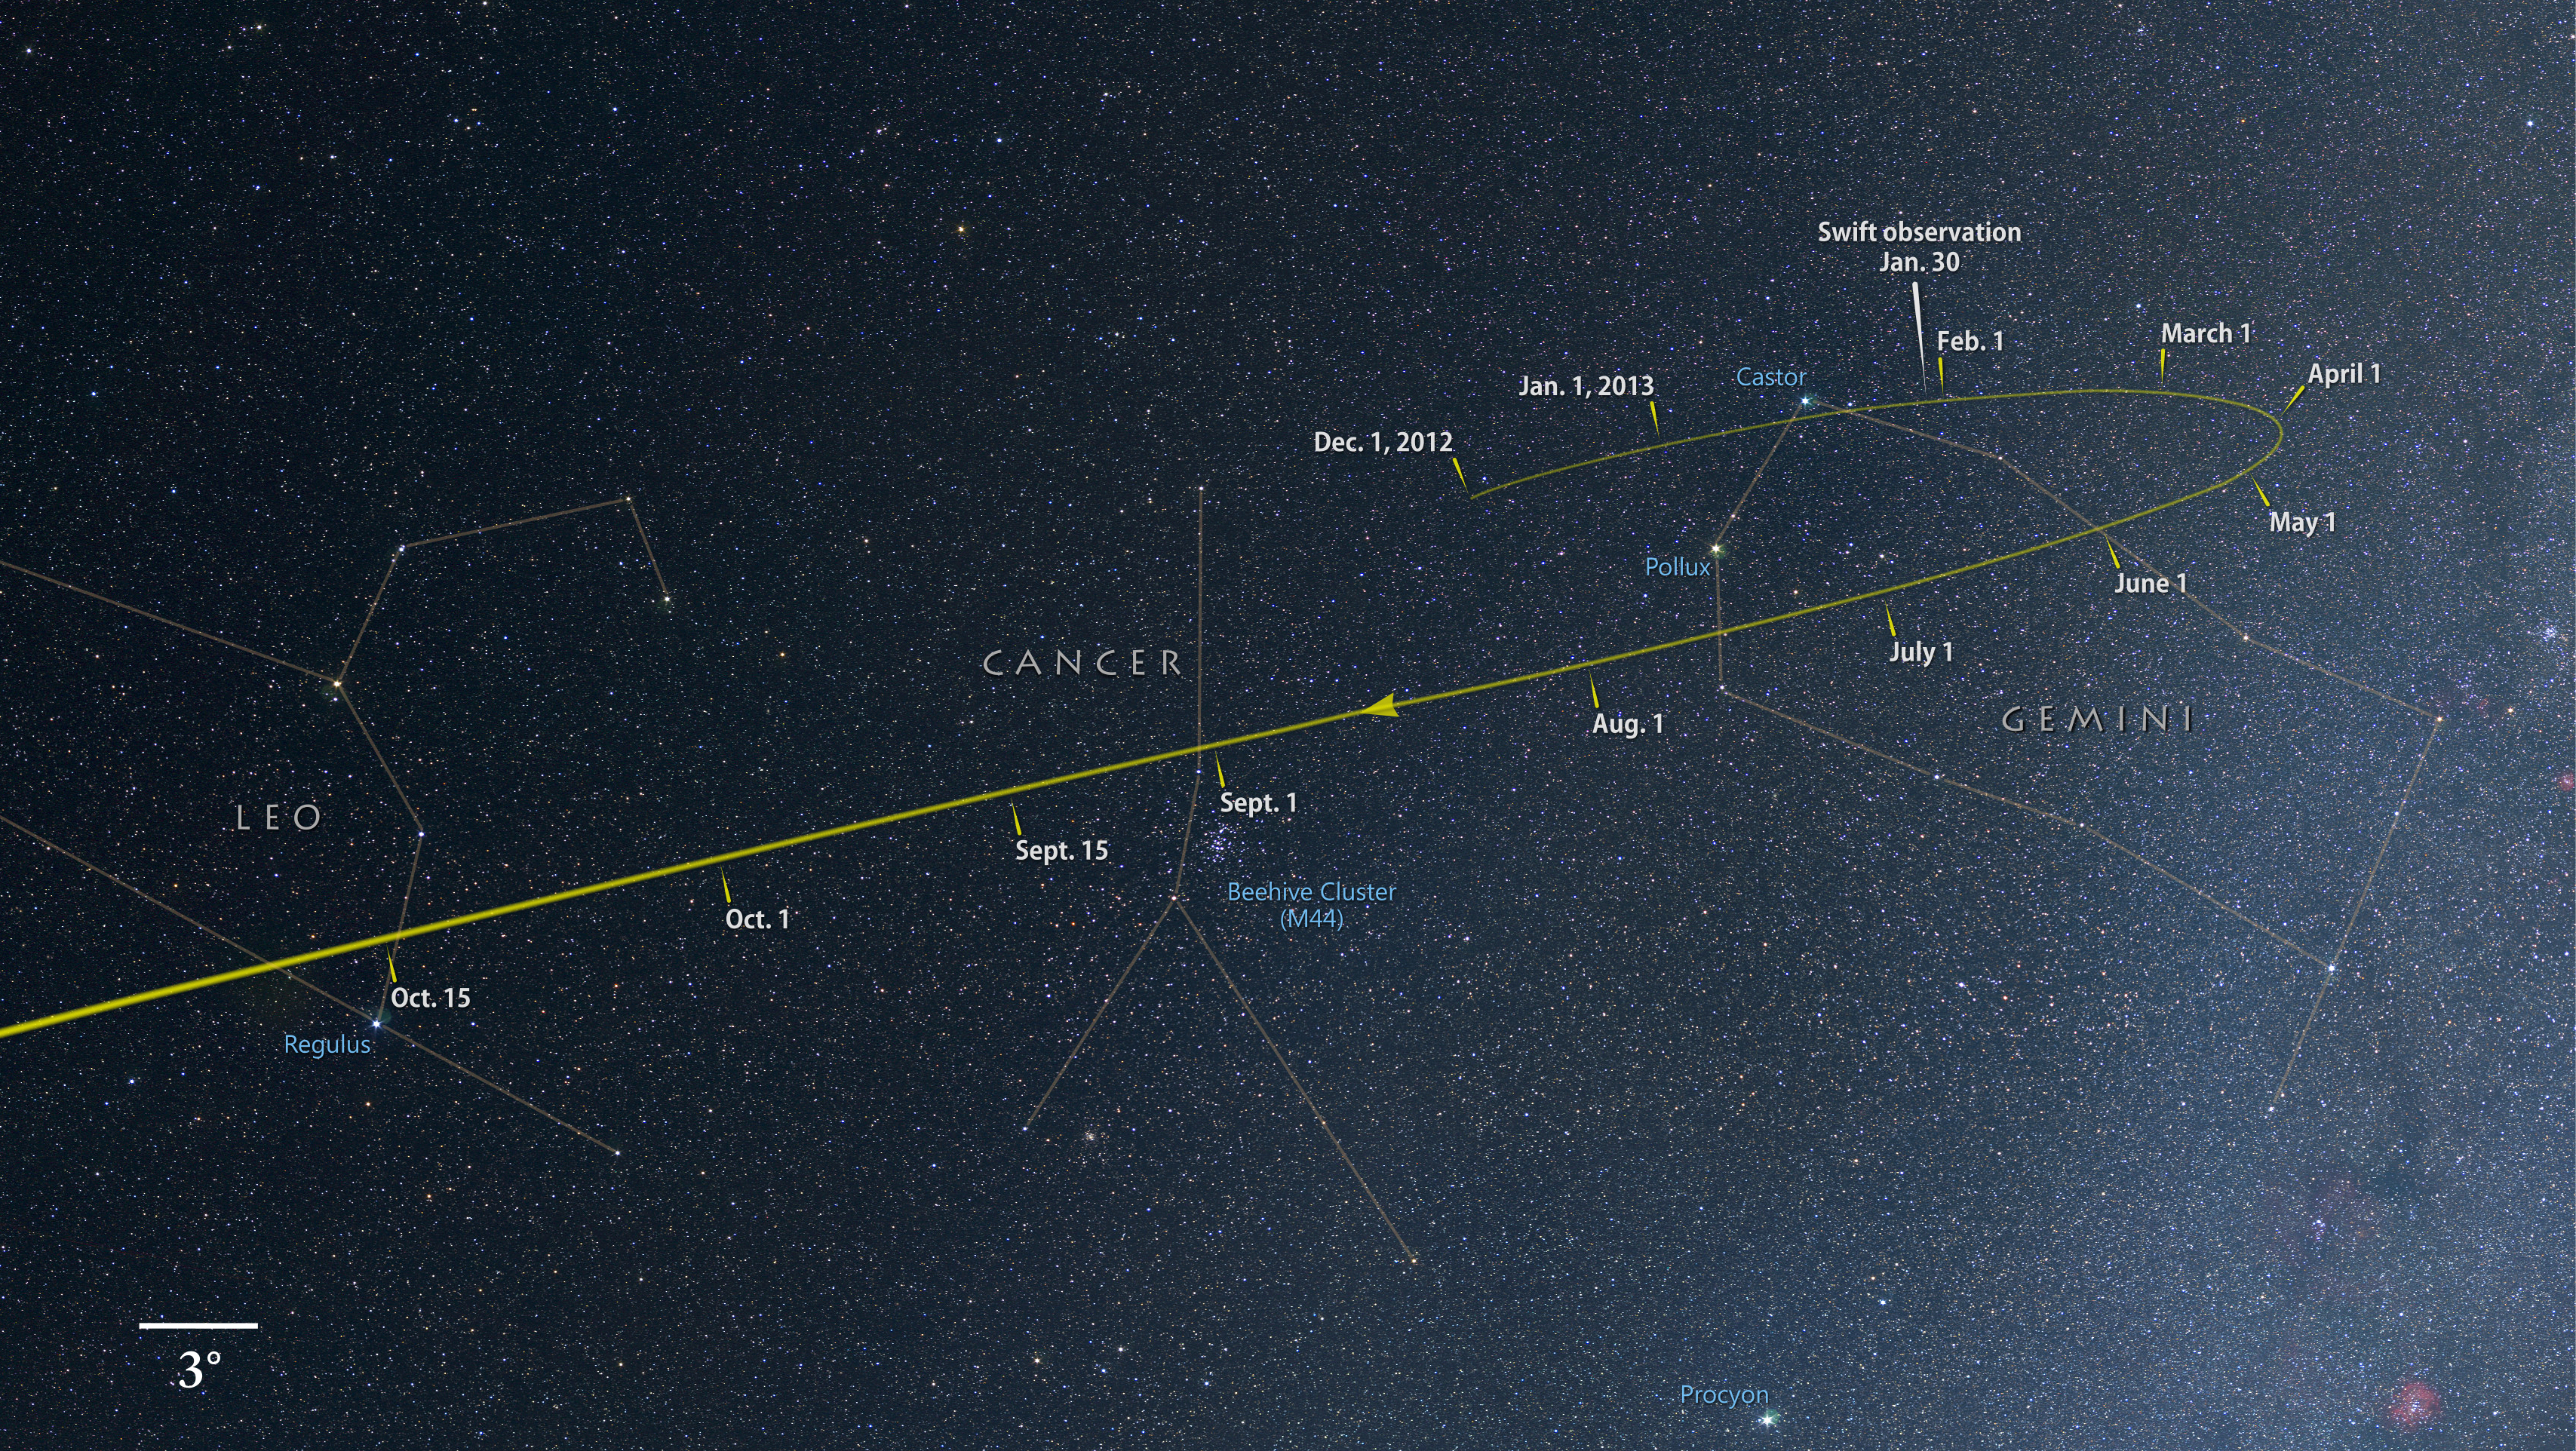 http://upload.wikimedia.org/wikipedia/commons/2/2f/Comet_ISON_tracks_through_the_constellations_Gemini%2C_Cancer_and_Leo_as_it_falls_toward_the_sun.jpg